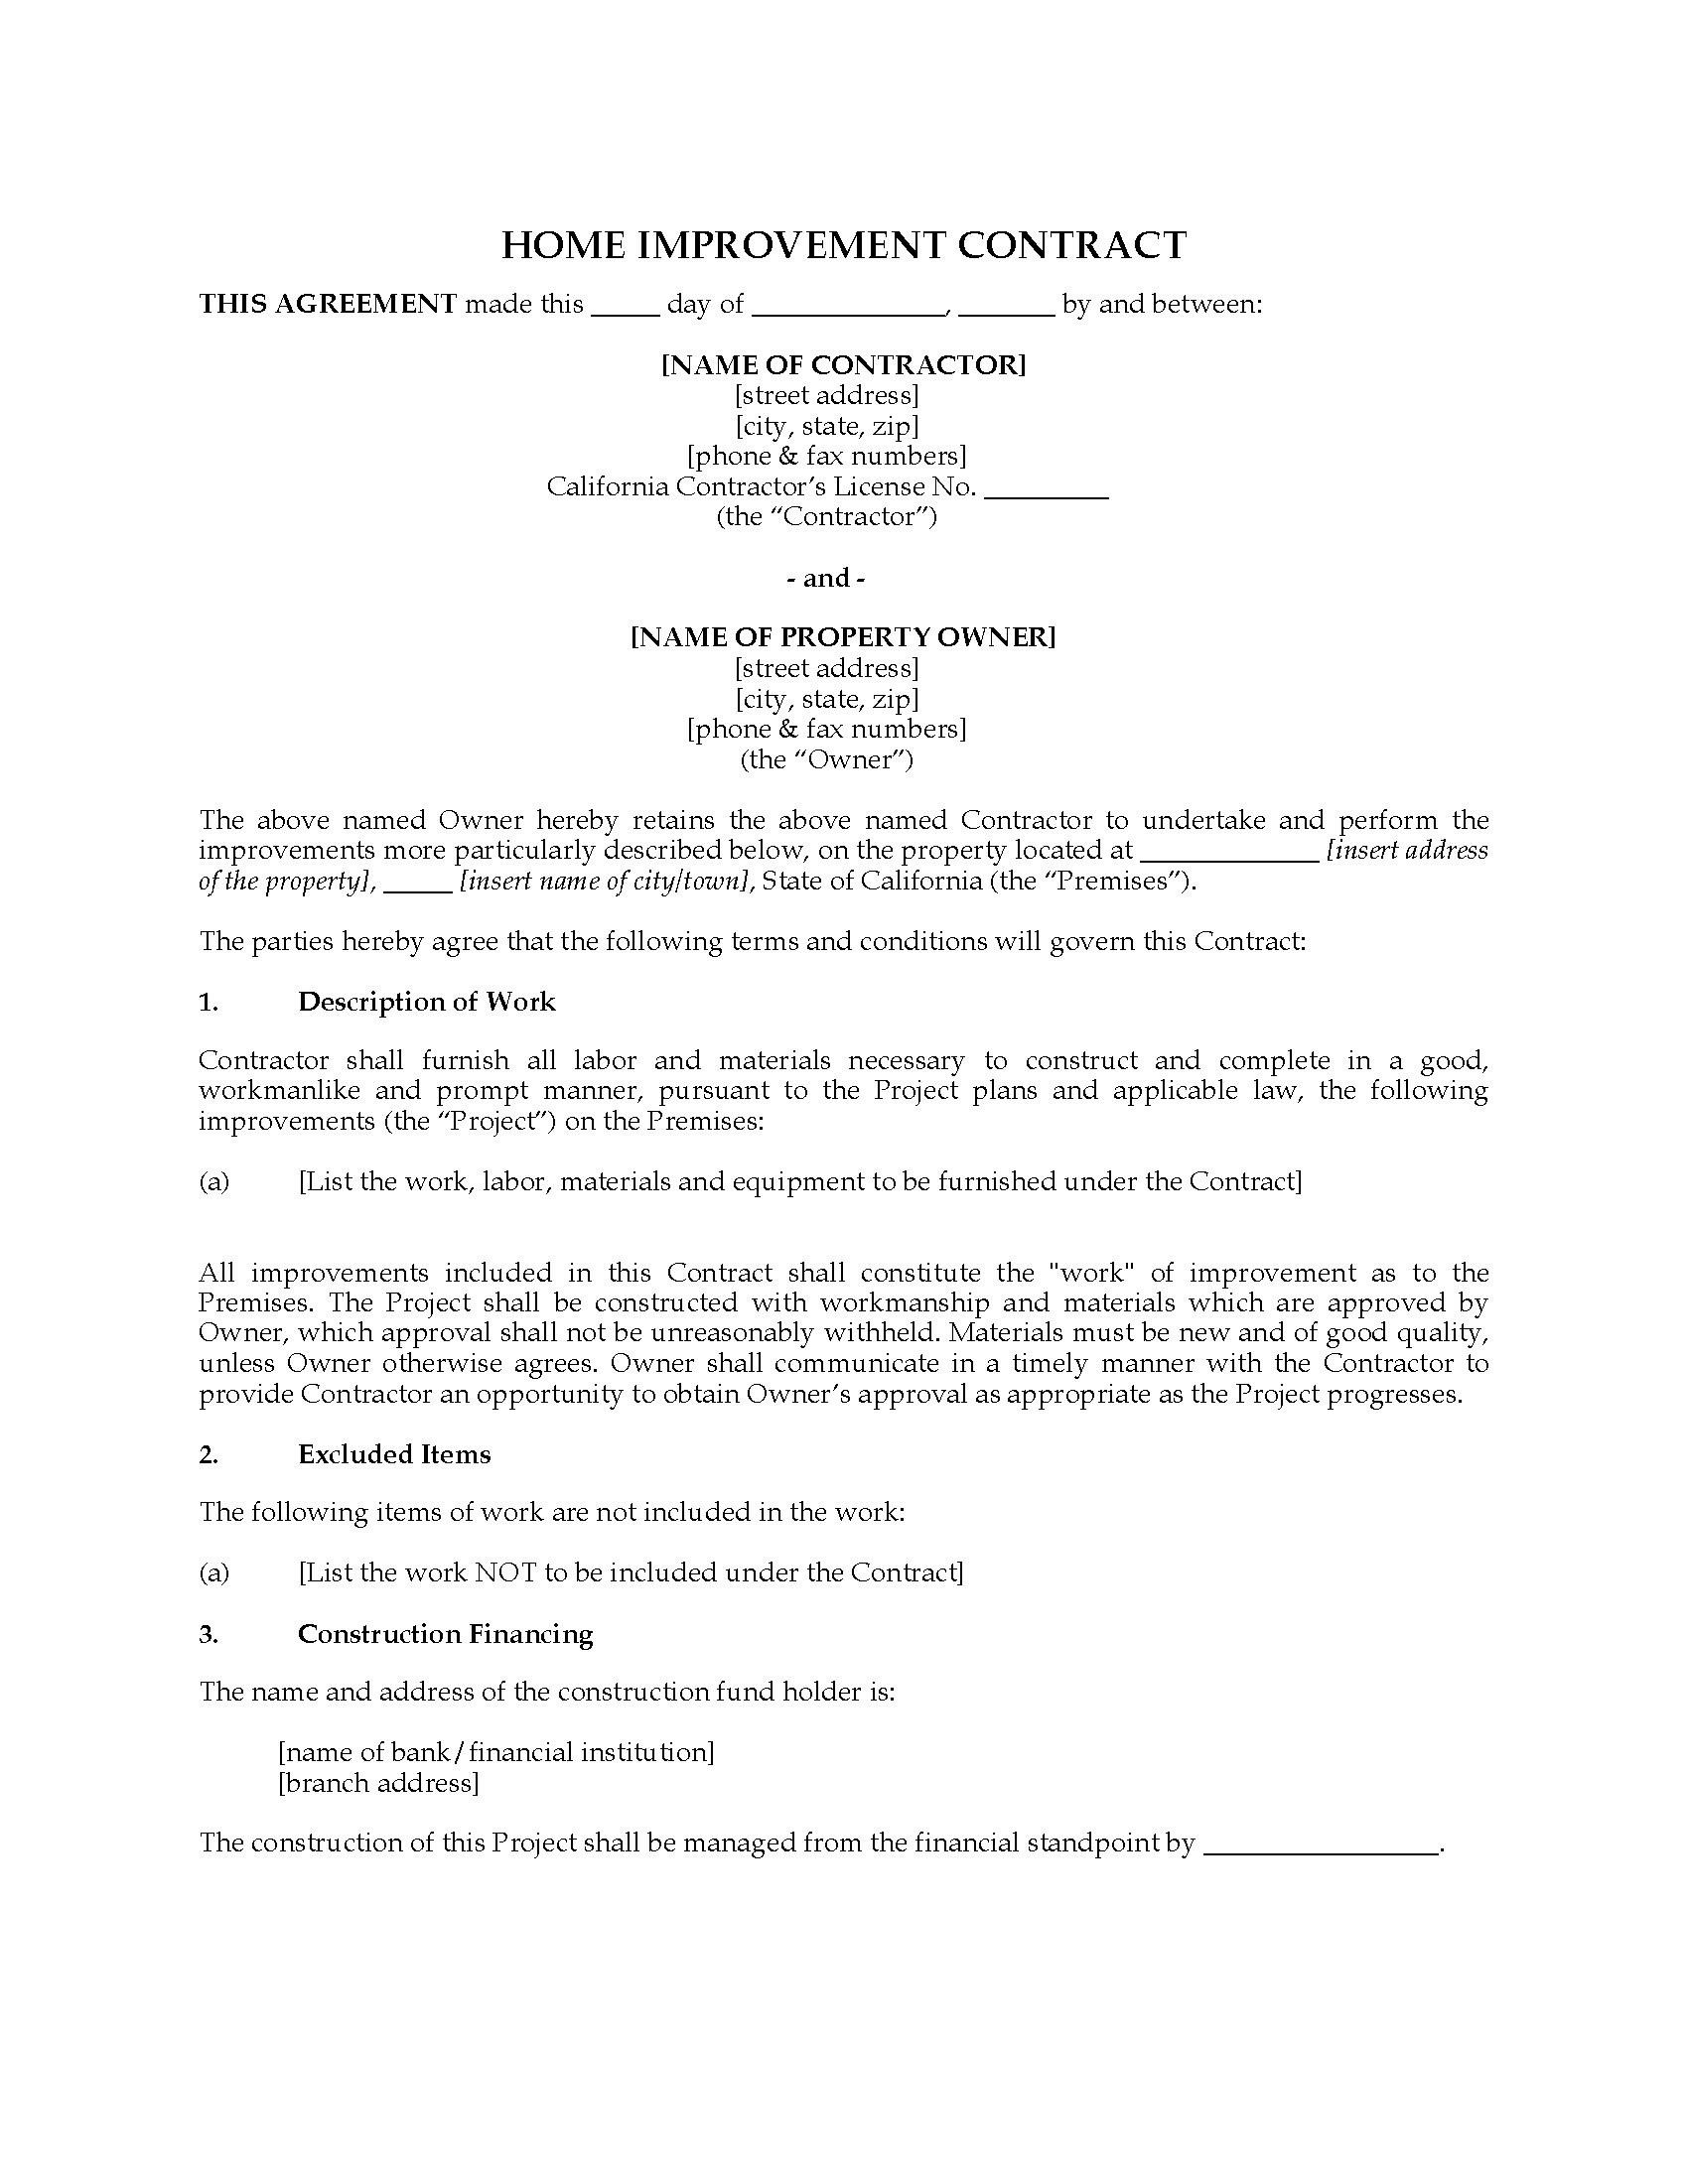 10 Remodeling Contract Templates To Download For Free Sample - Free Printable Home Improvement Contracts